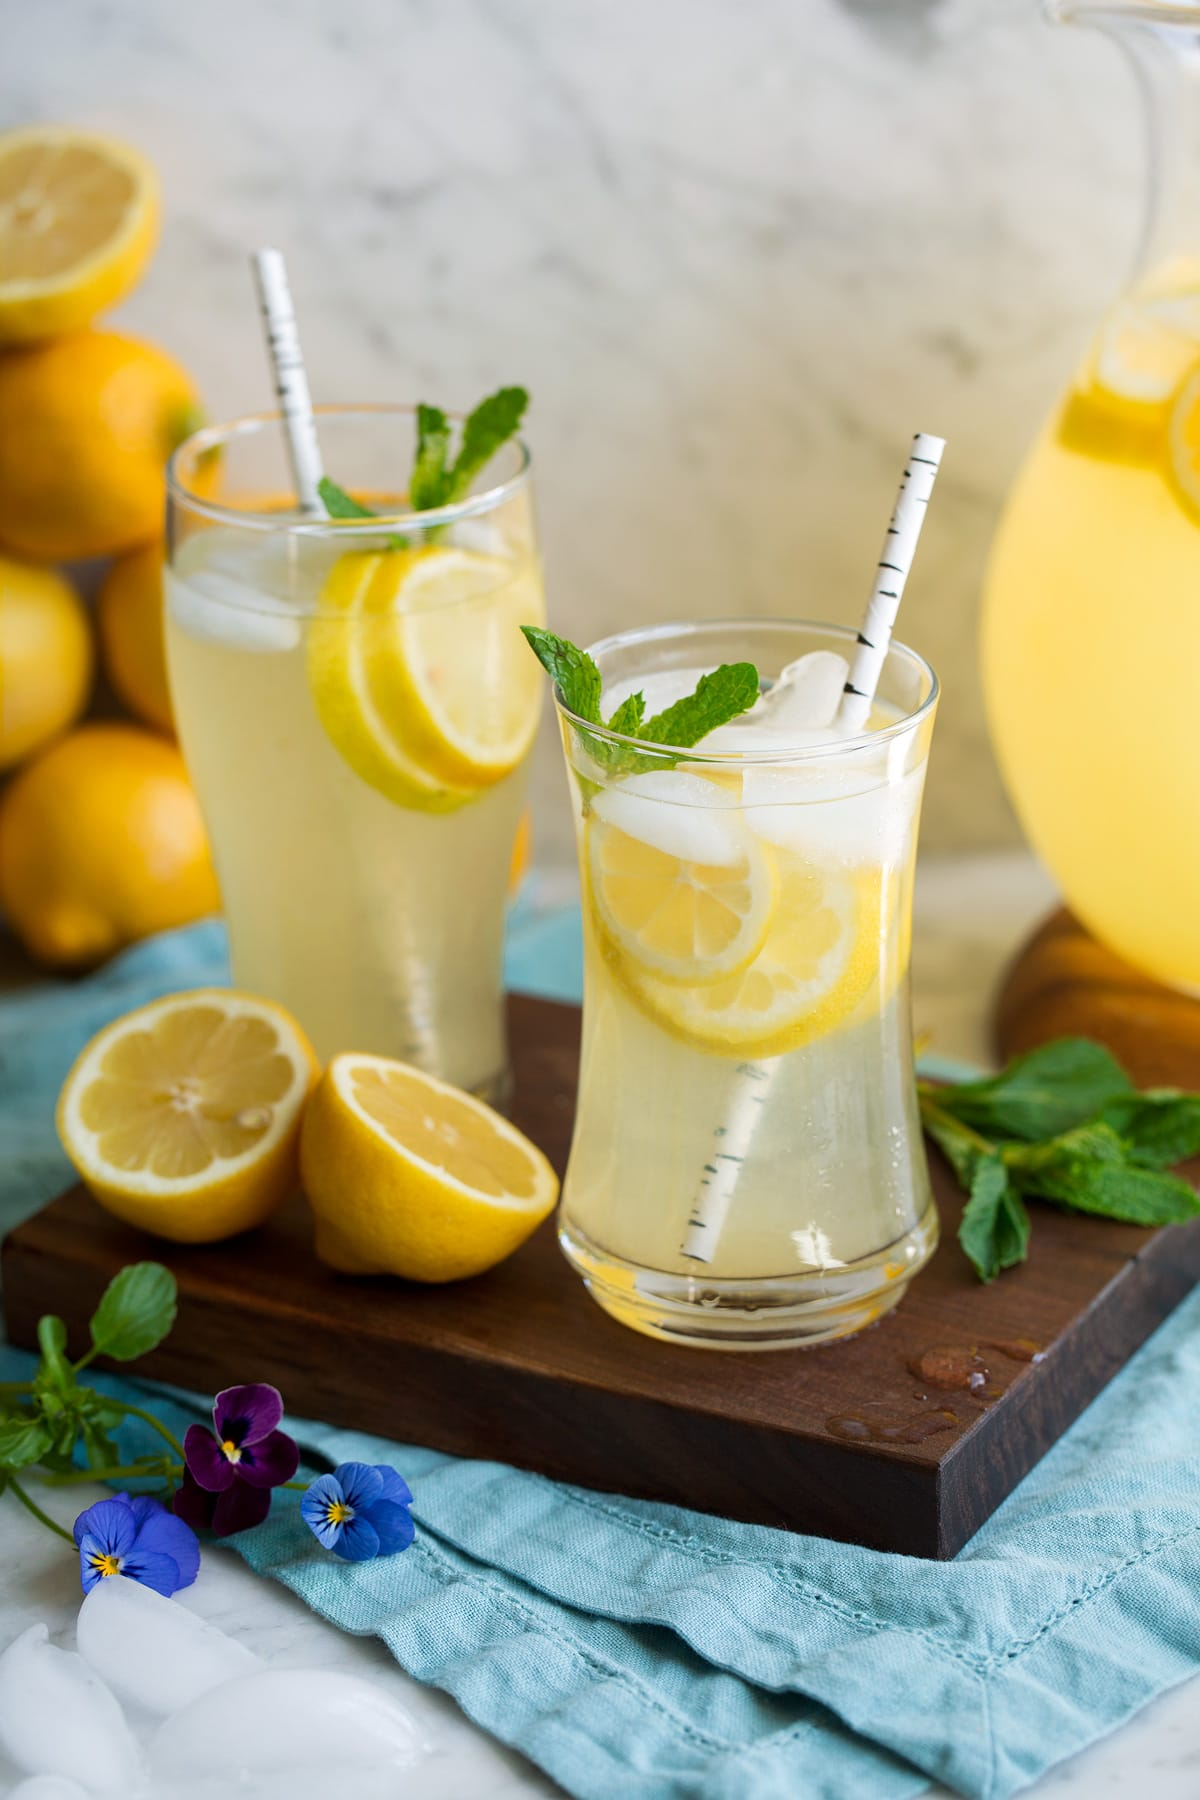 Two glasses of lemonade on a wooden platter.